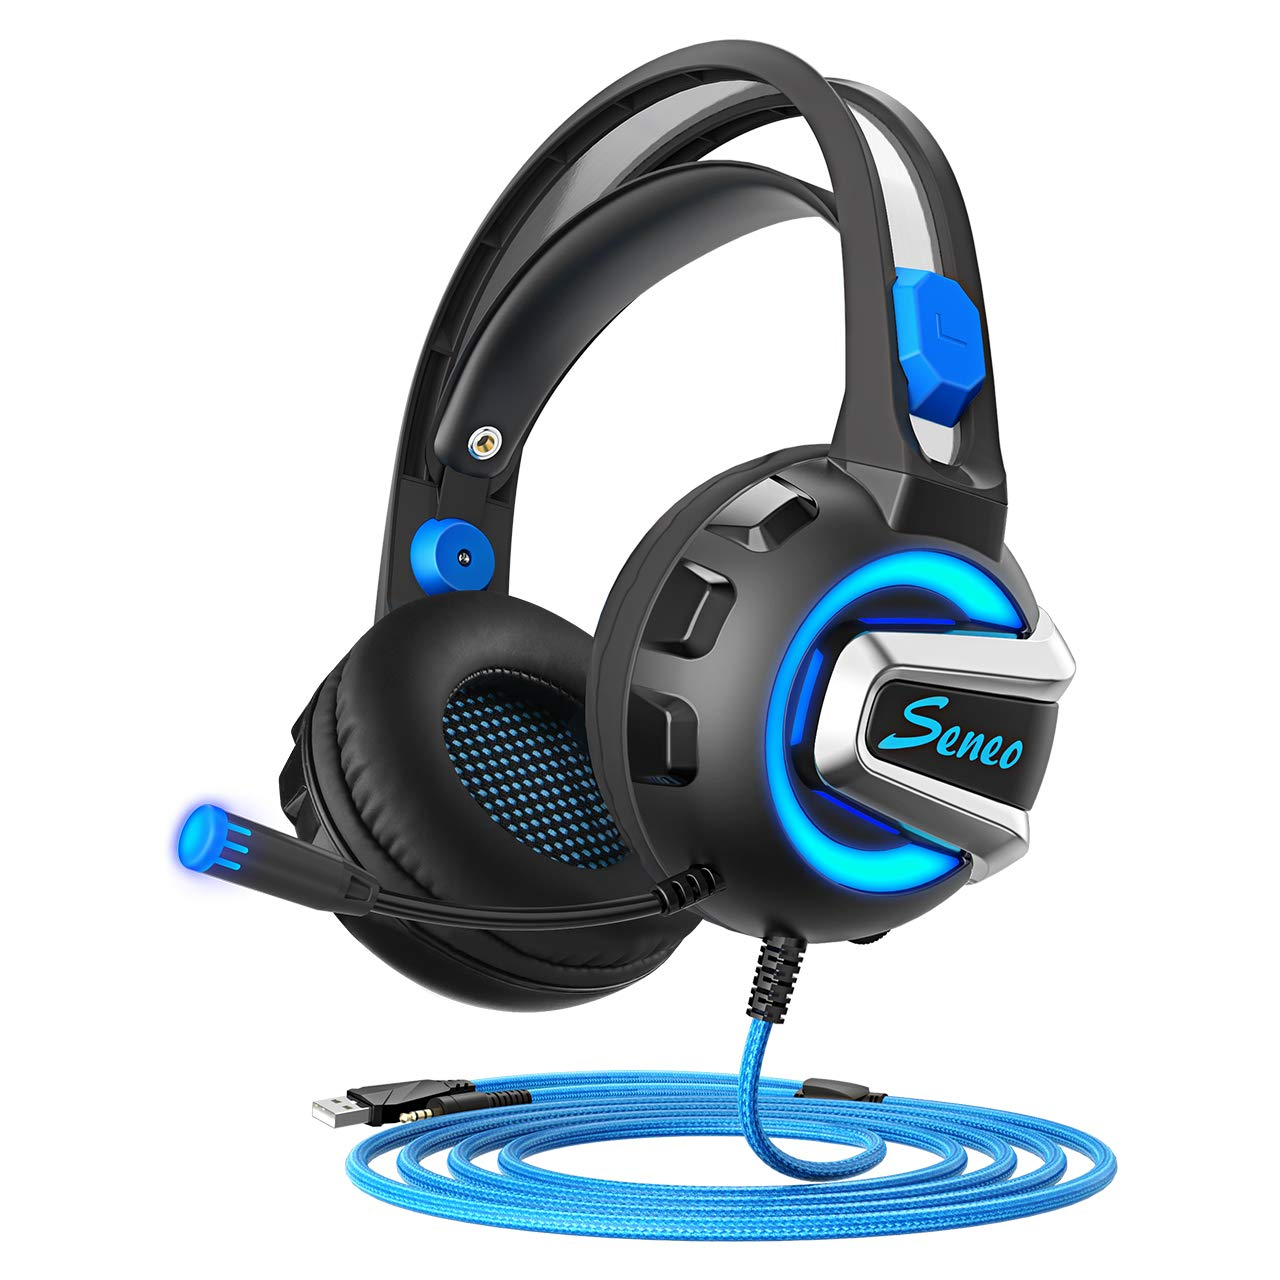 Seneo Gaming Headset, PC, Xbox One, PS4 Headset with Mic, 50mm Speaker Drivers, 3D Surround Sound, Soft Memory Foam LED Light Over-Ear Gaming Headphones for Nintendo Switch, Mobiles